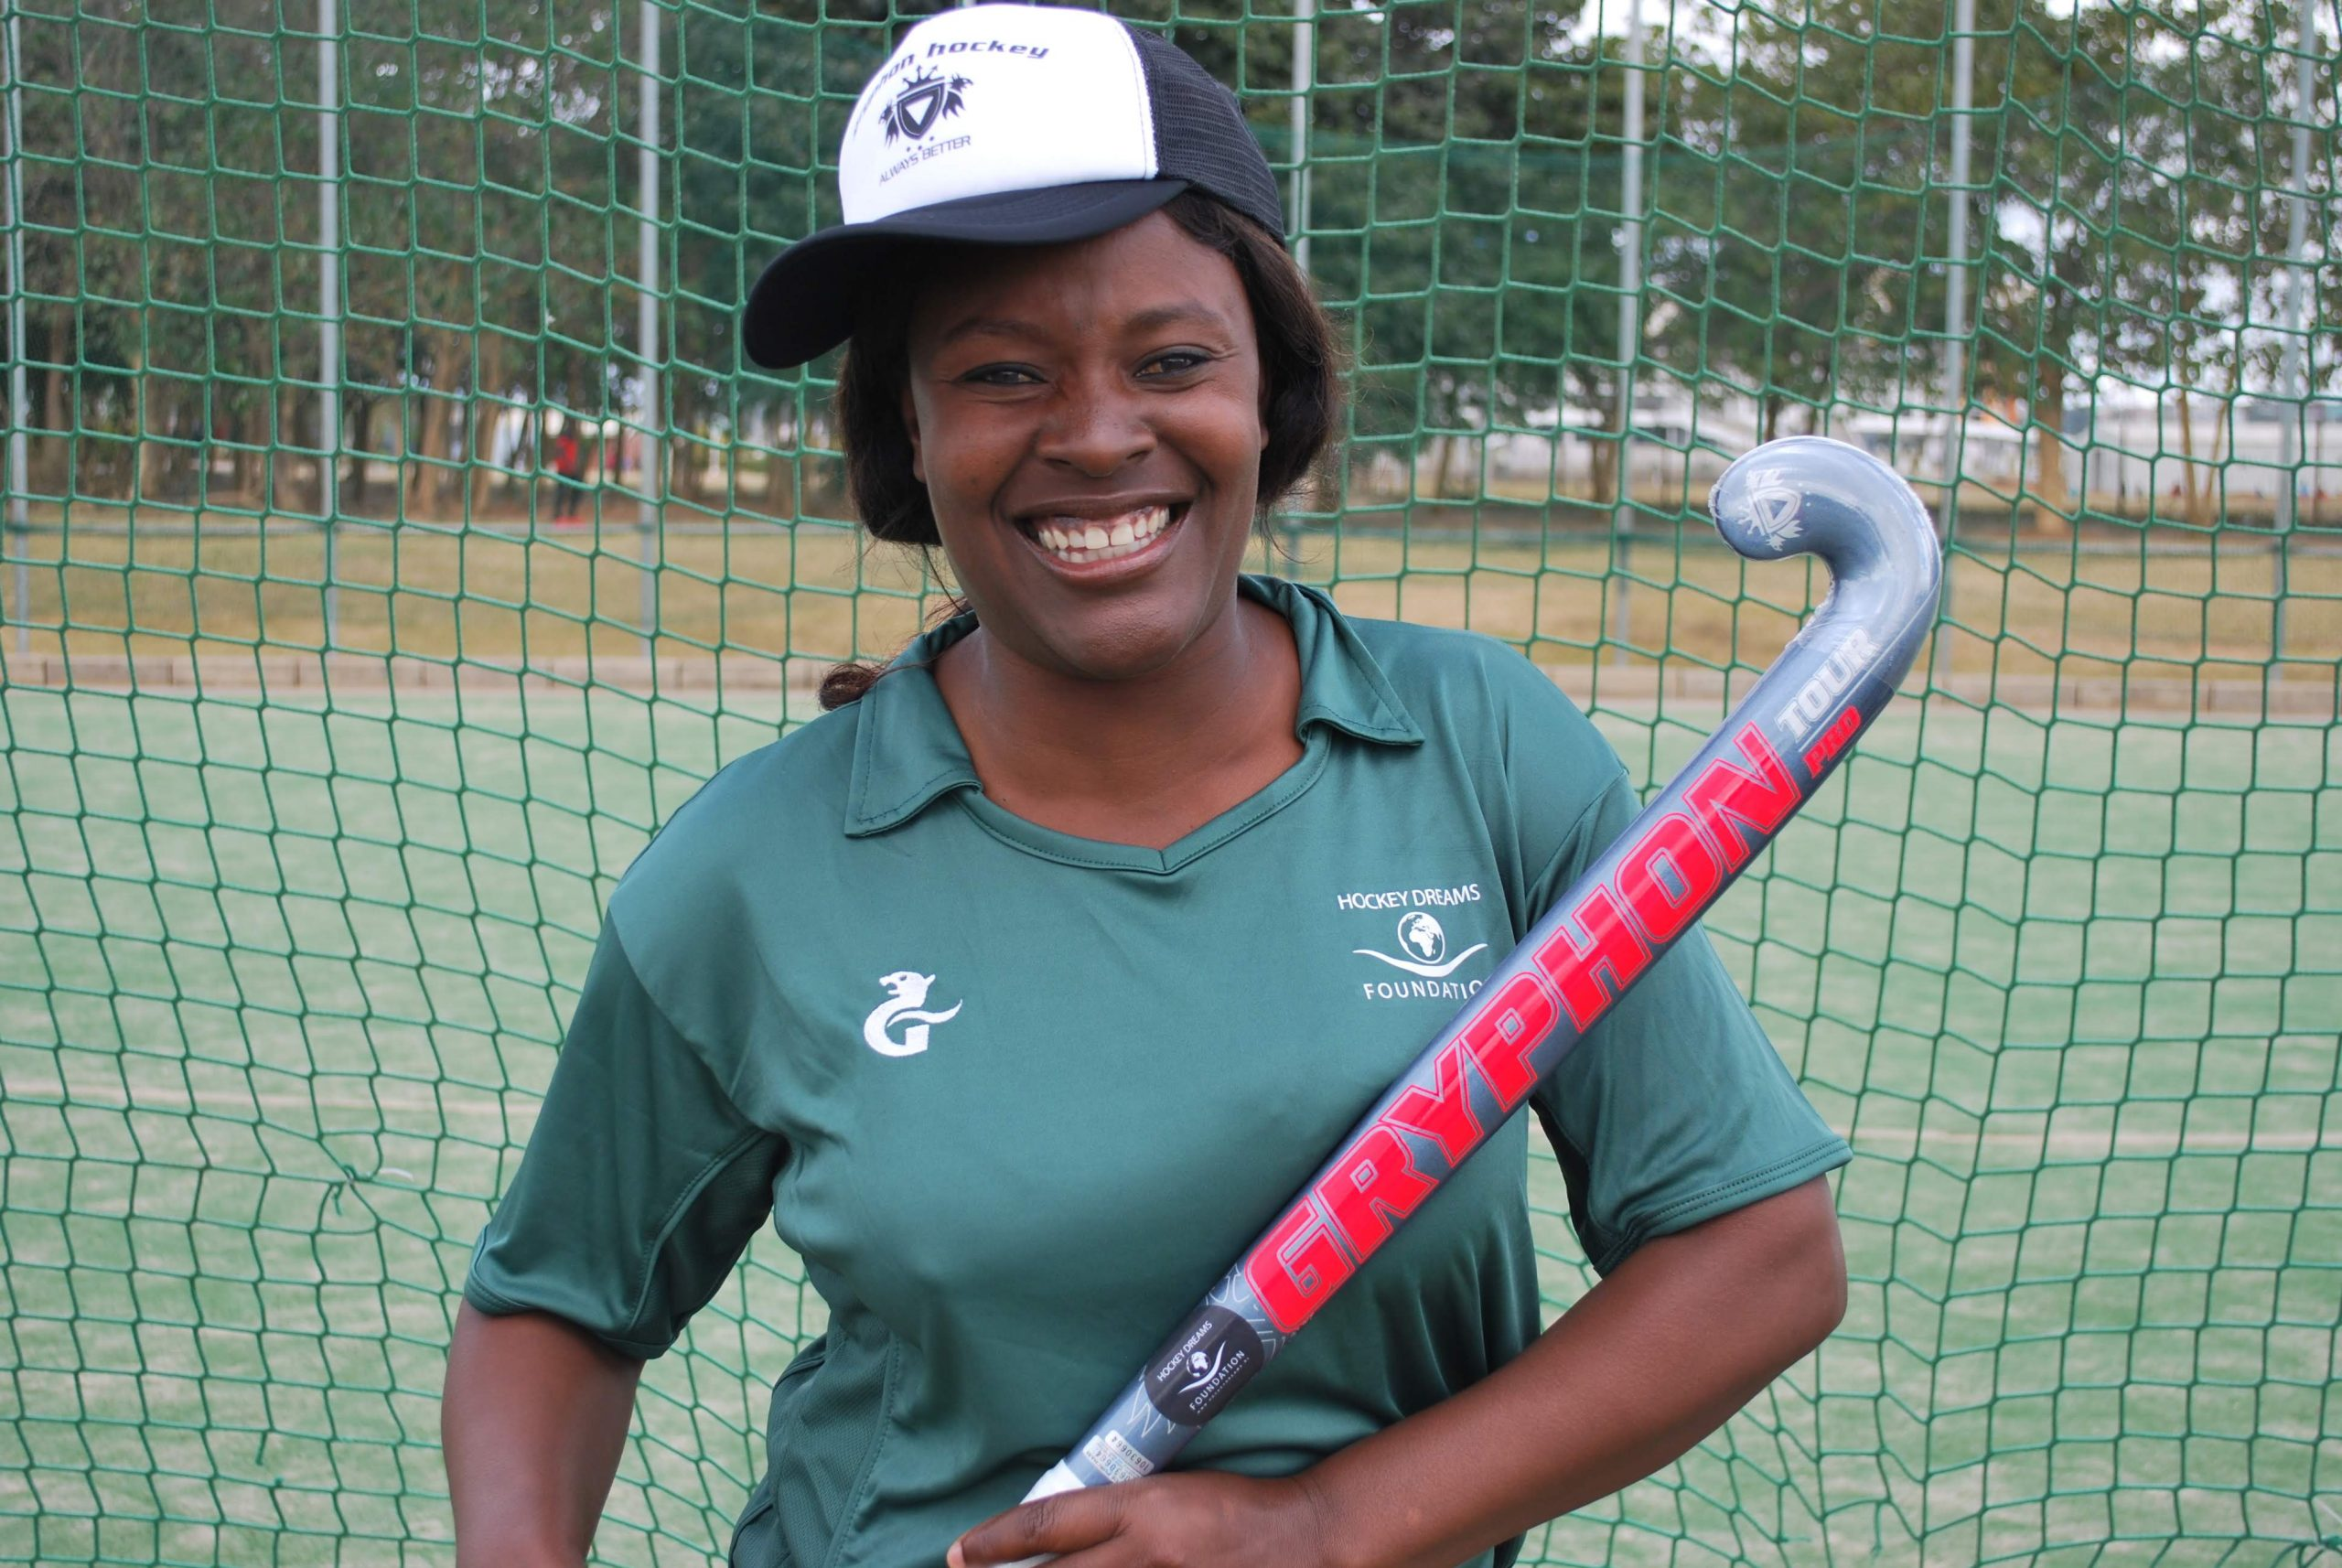 Coach Miss Makayi and her story on COVID-19